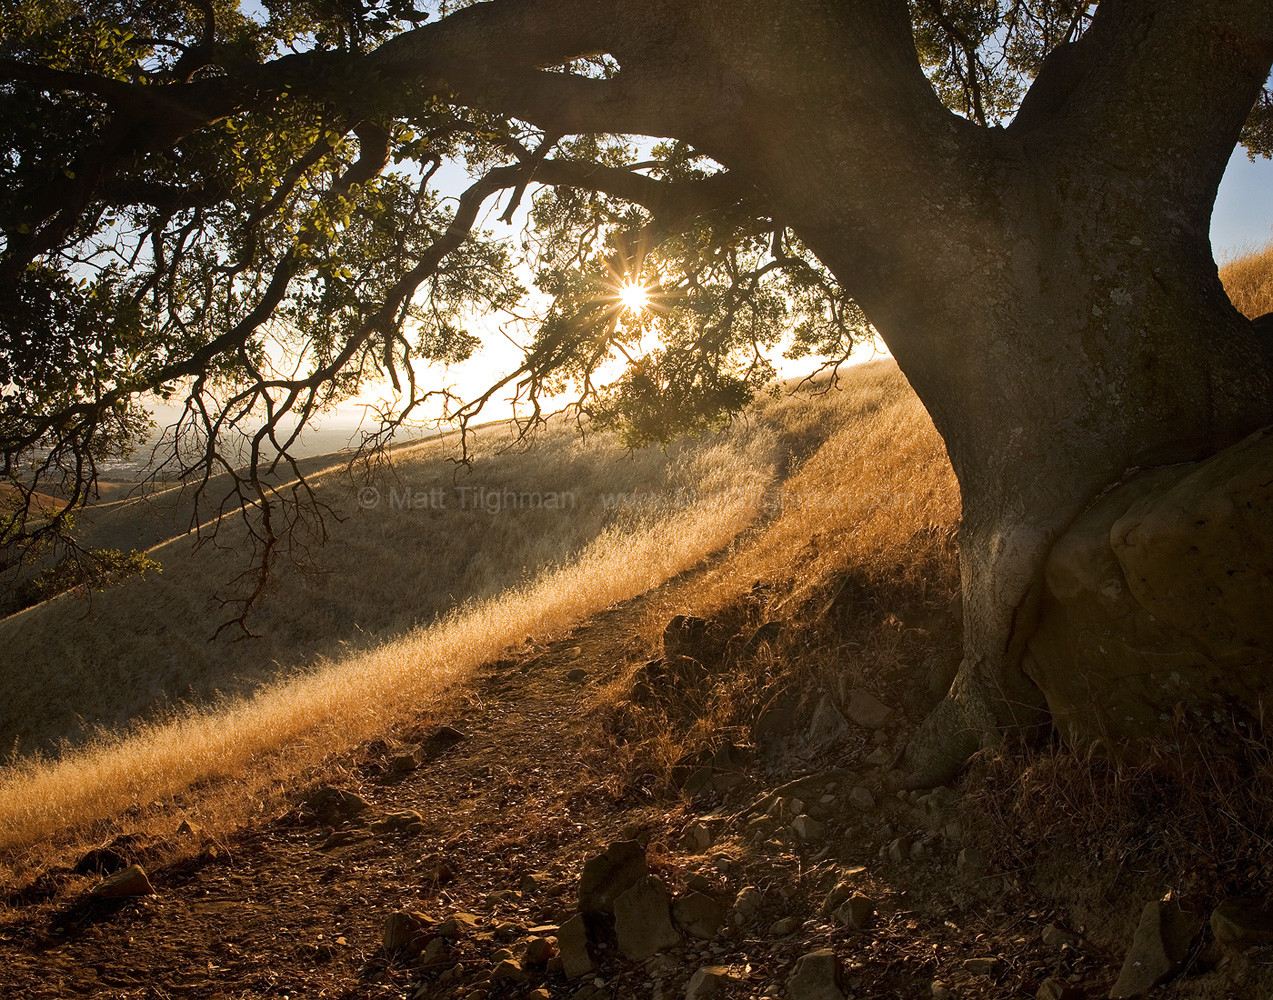 Fine art stock photograph from California's East Bay Area. From the shade of an ancient oak tree, the sunset lights the chaparral landscape and city beyond.